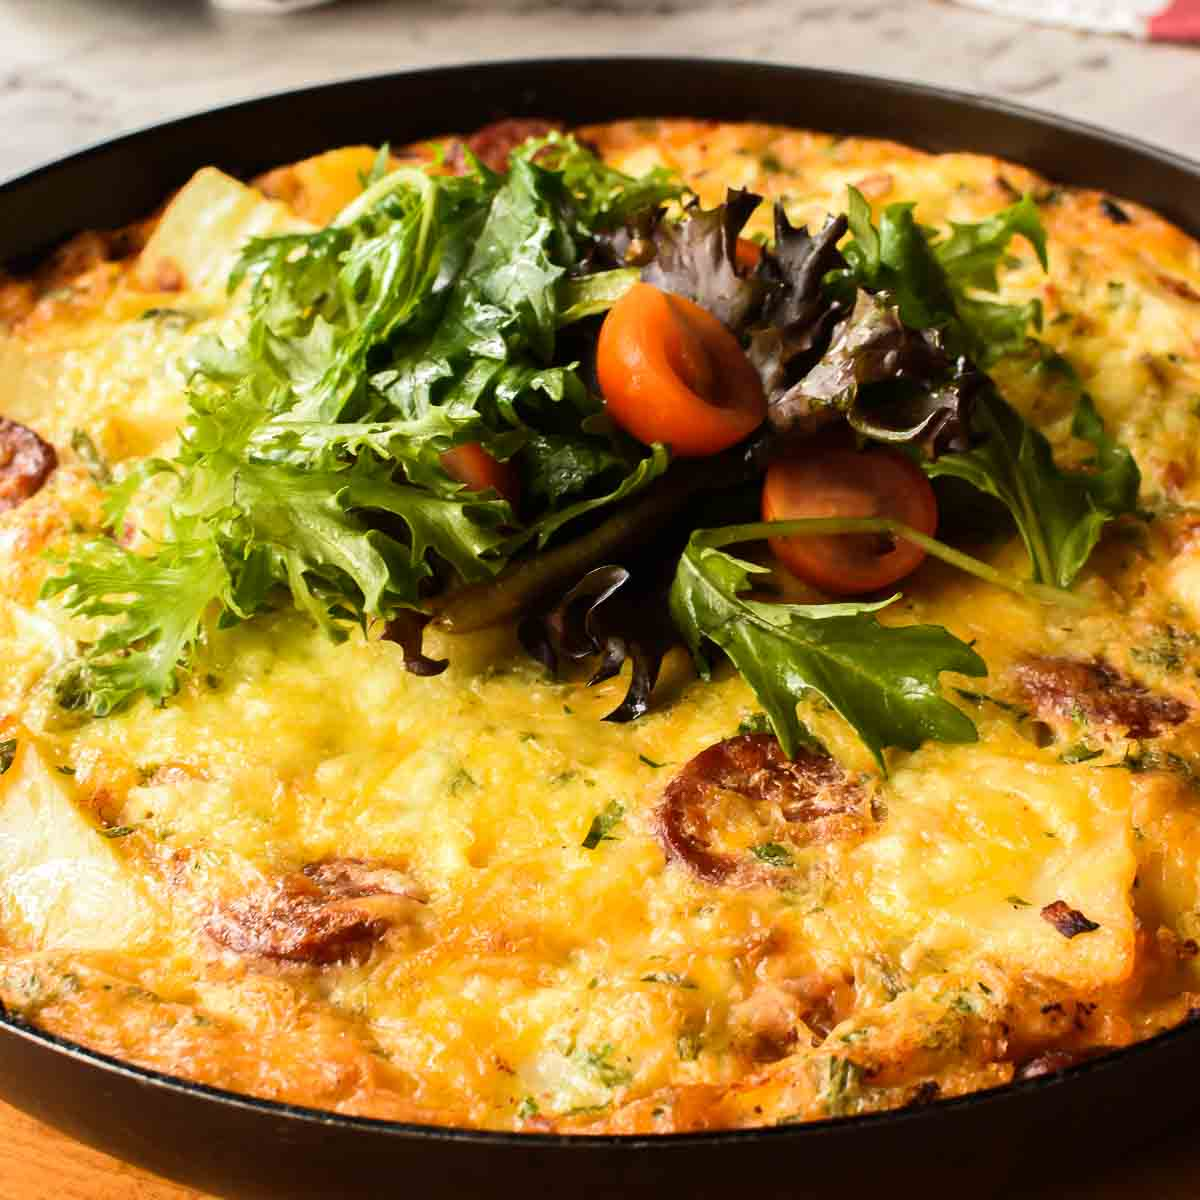 frittata in a black pan with lettuce and tomatoe pieces in the centre viewed from 45 degree angle